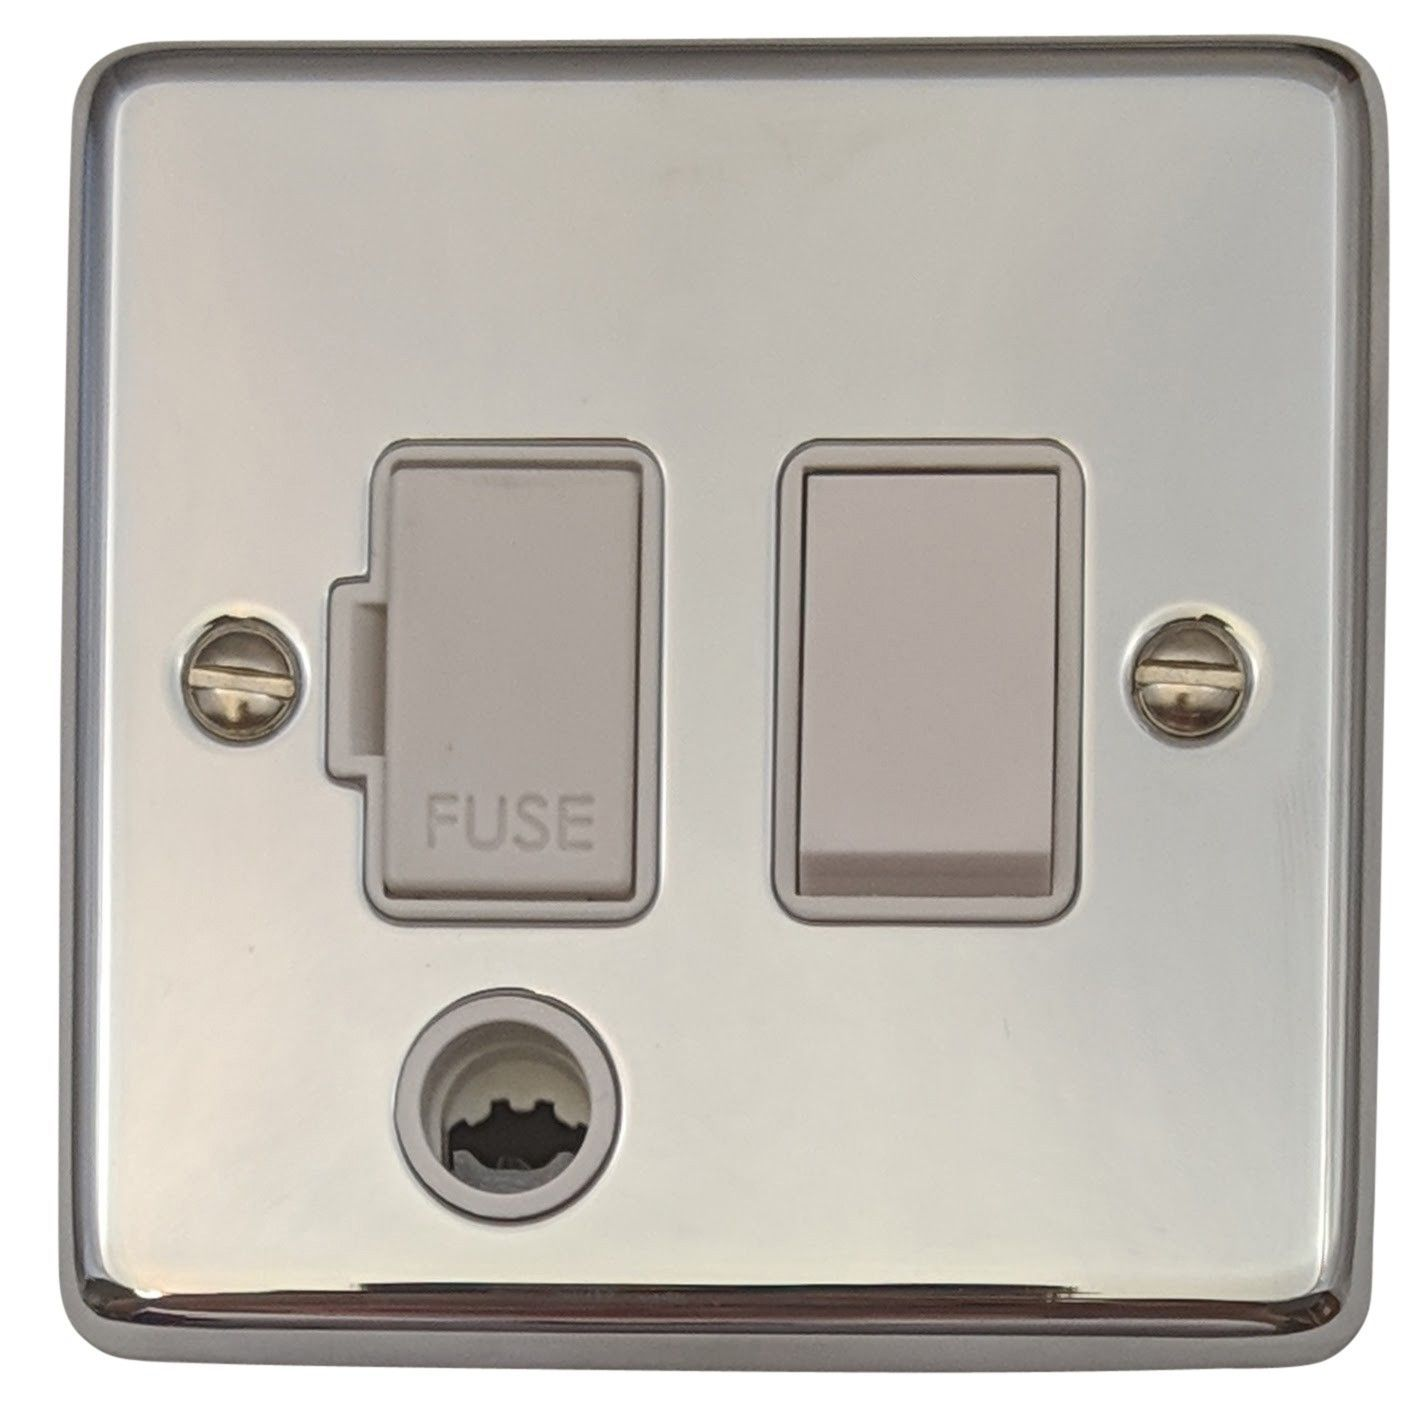 G&H CC56W Standard Plate Polished Chrome 1 Gang Fused Spur 13A Switched & Flex Outlet